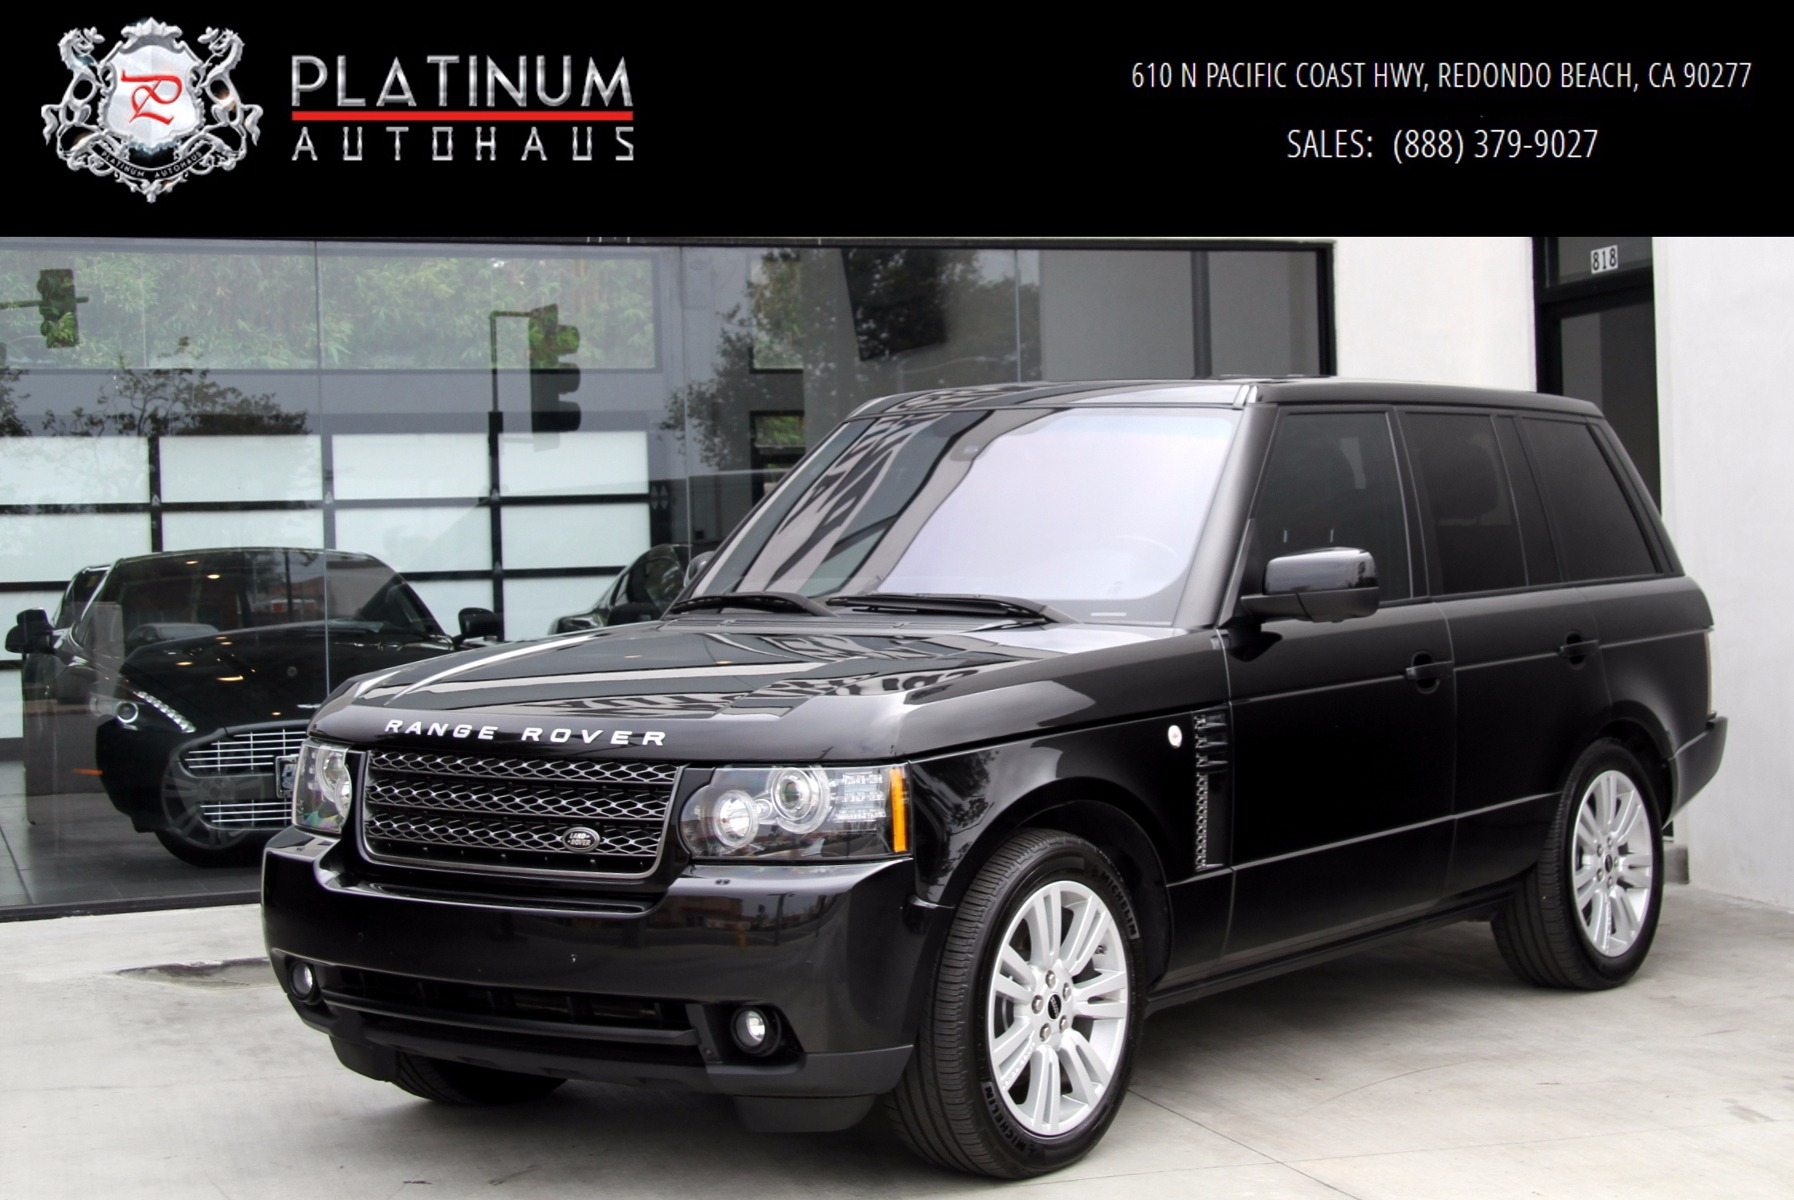 2012 Land Rover Range Rover HSE Luxury Package Stock 5978